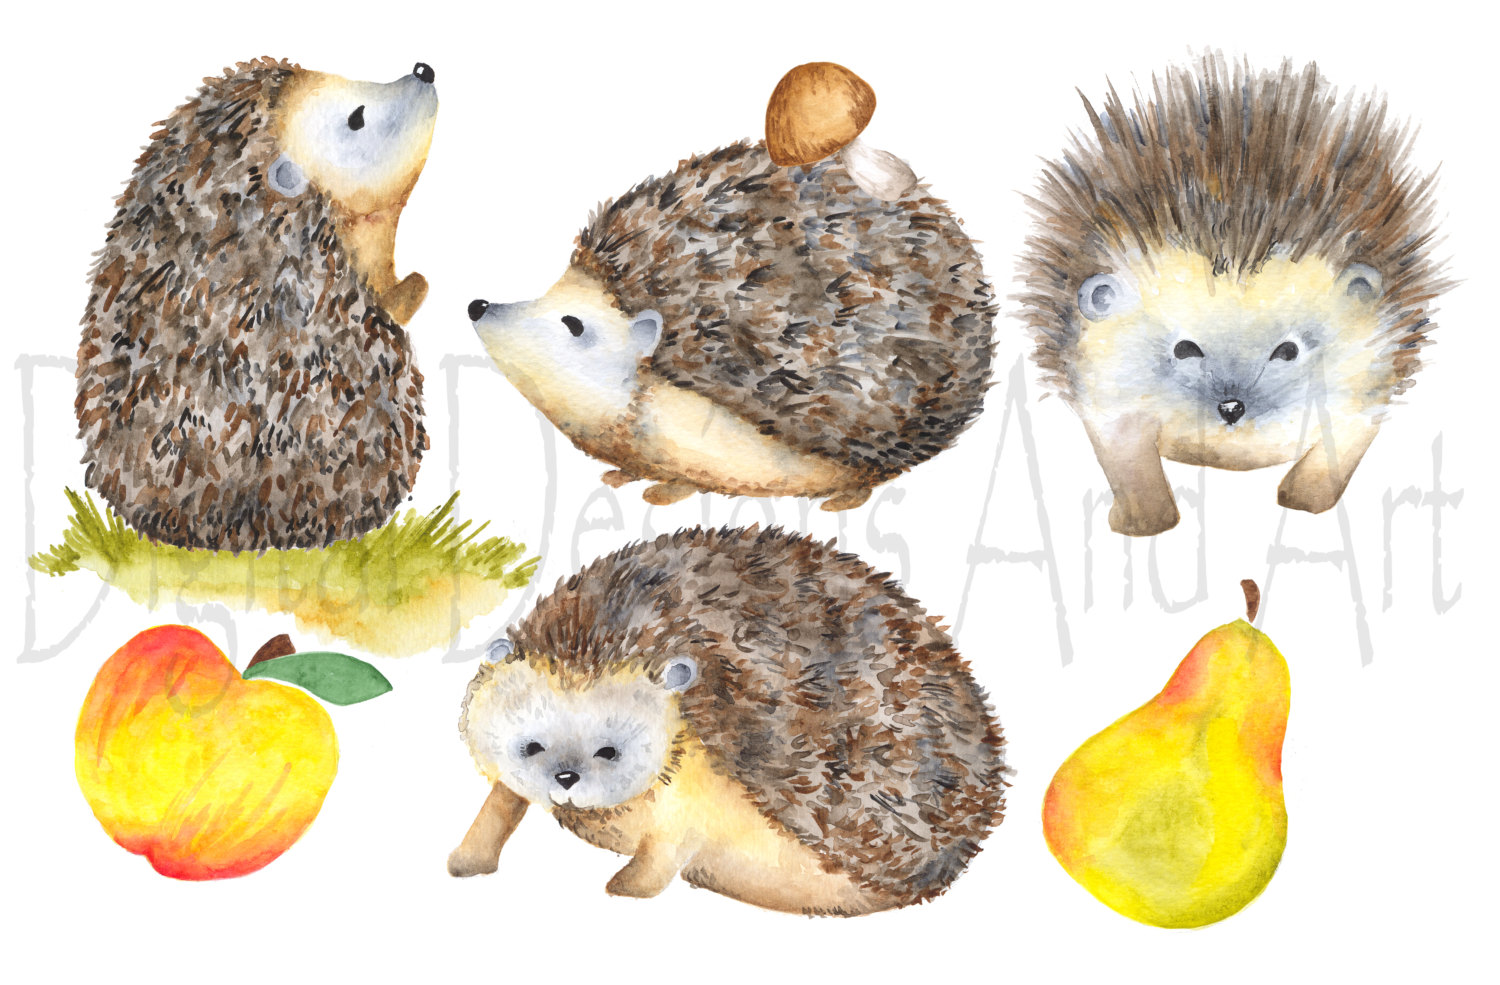 Watercolor hedgehog clipart, porcupine clipart, Forest animal.